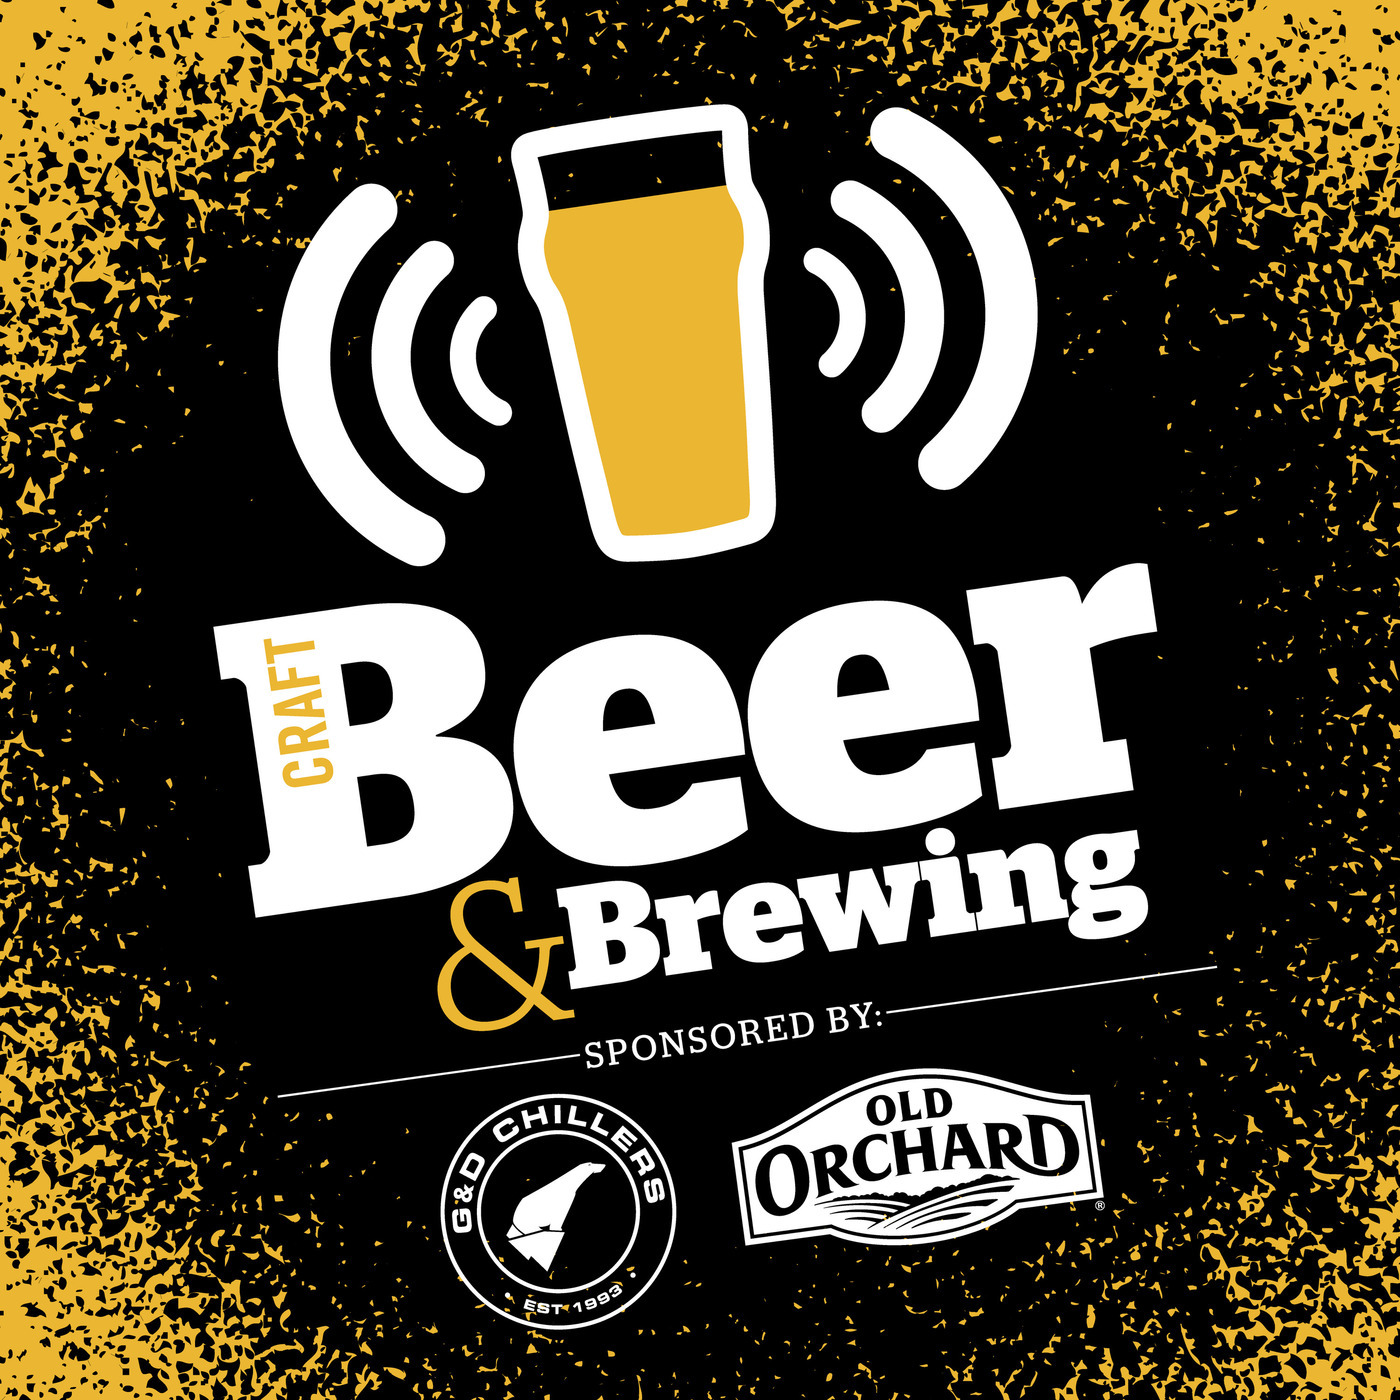 Craft Beer & Brewing Magazine Podcast 205: Jeremy Grinkey of The Bruery Puts His Faith in the Blend